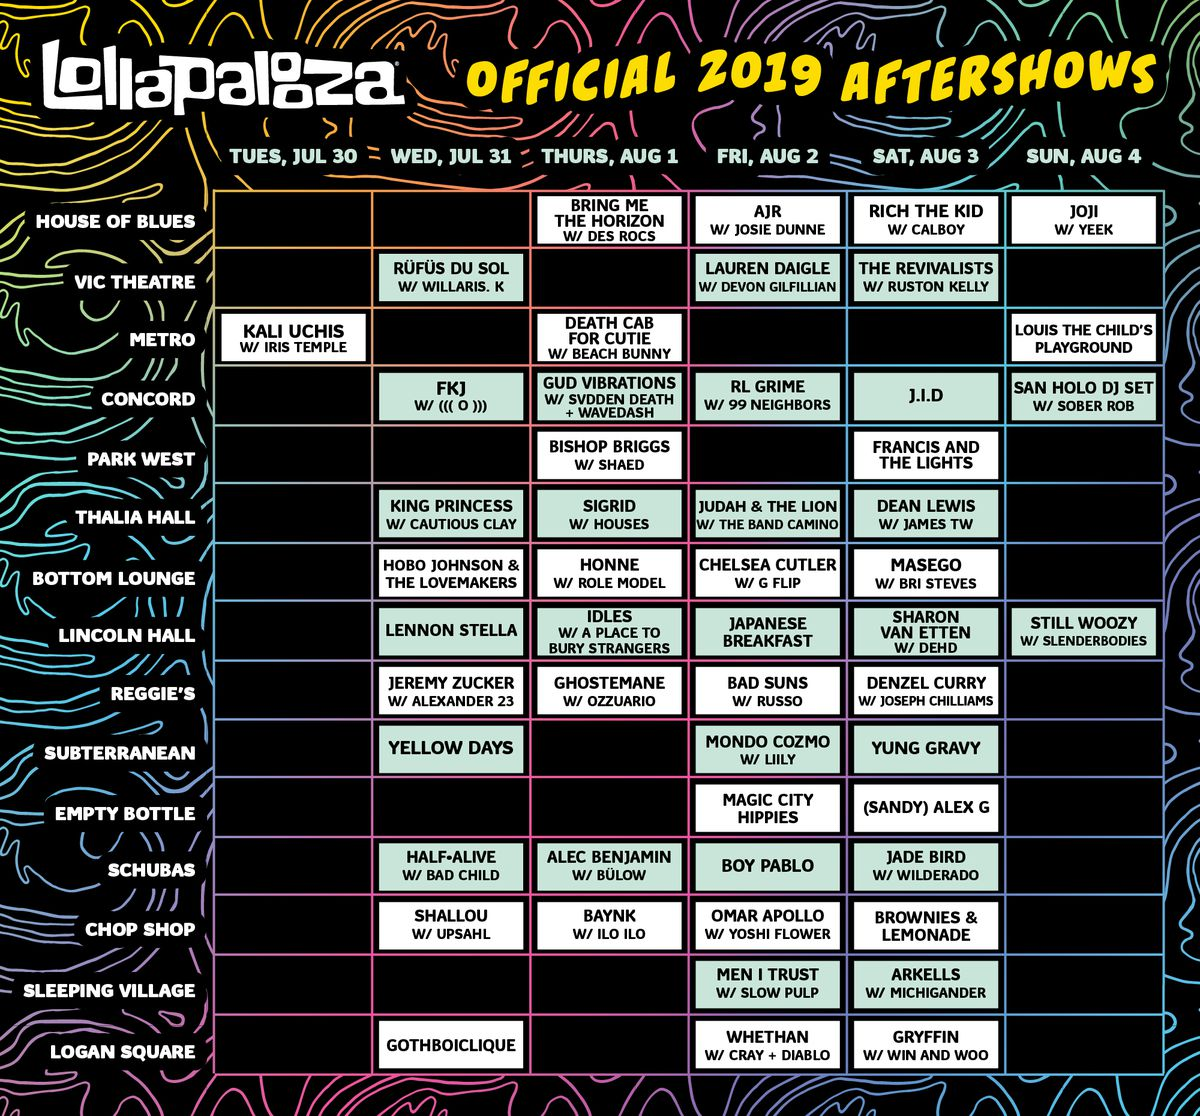 Lollapalooza 2019 after shows list, schedule - Chicago Sun-Times